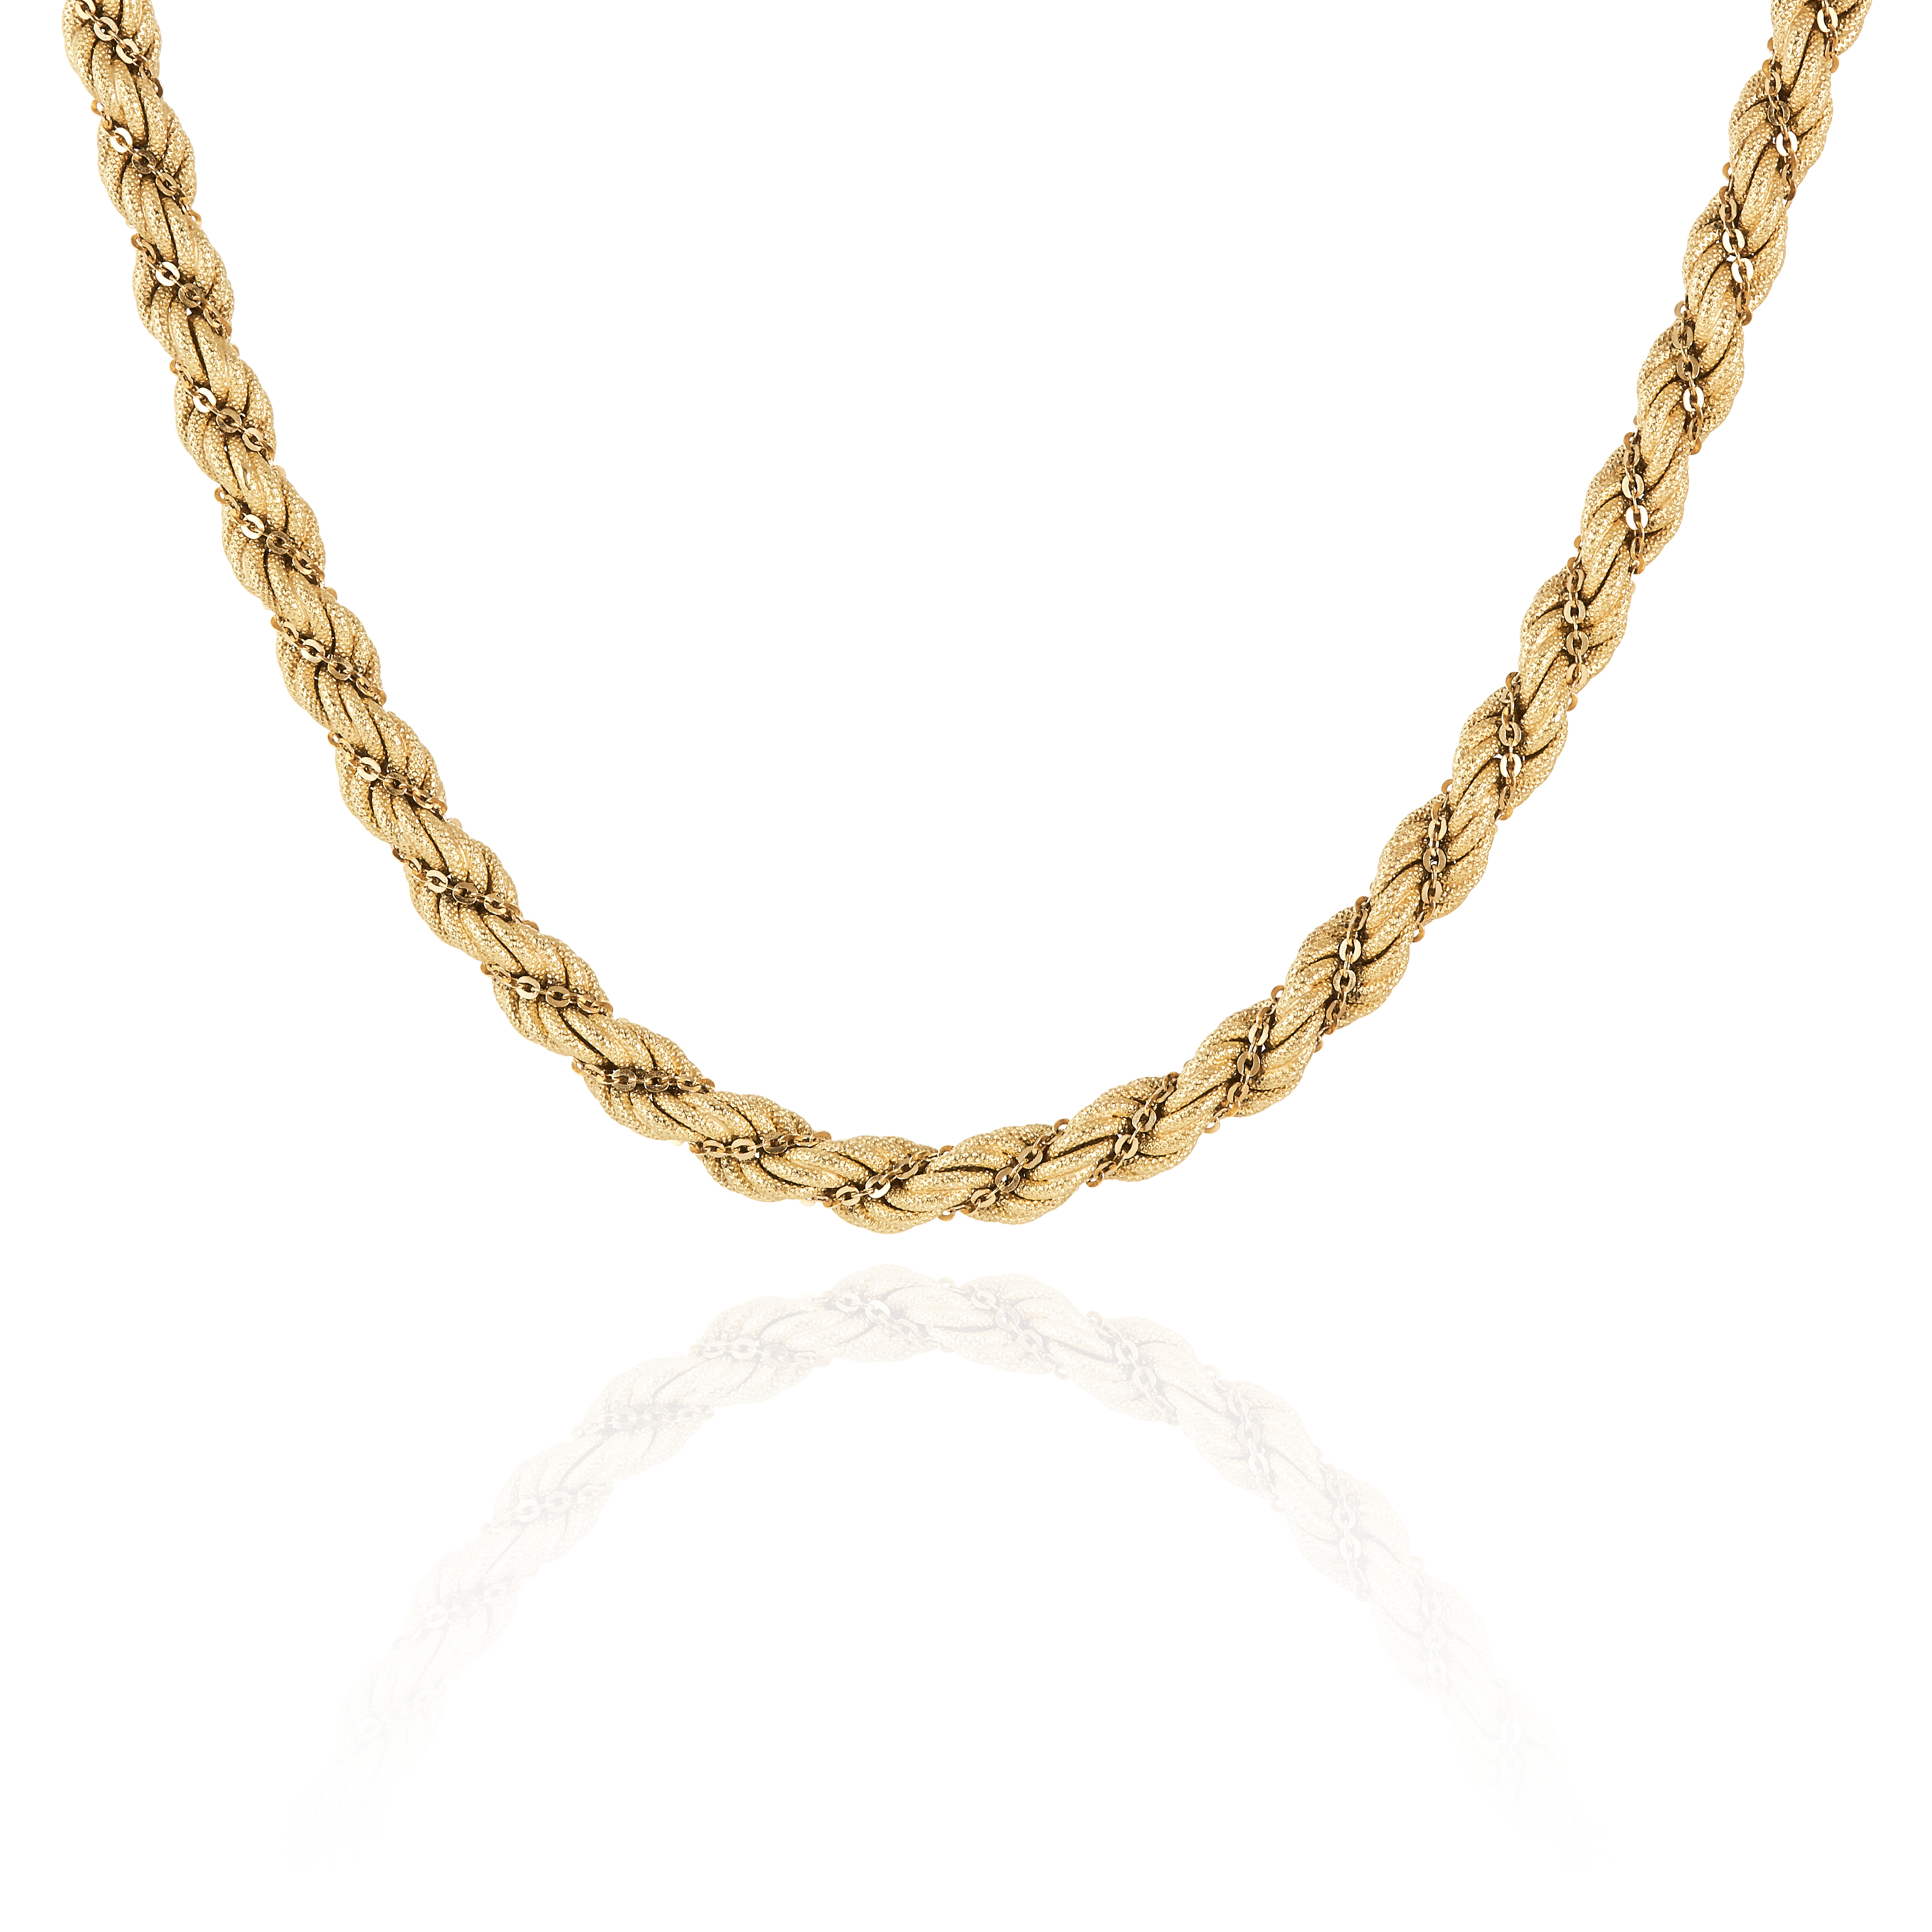 A FANCY LINK ROPE CHAIN NECKLACE, ITALIAN in 18ct yellow gold, designed as intertwining gold chain